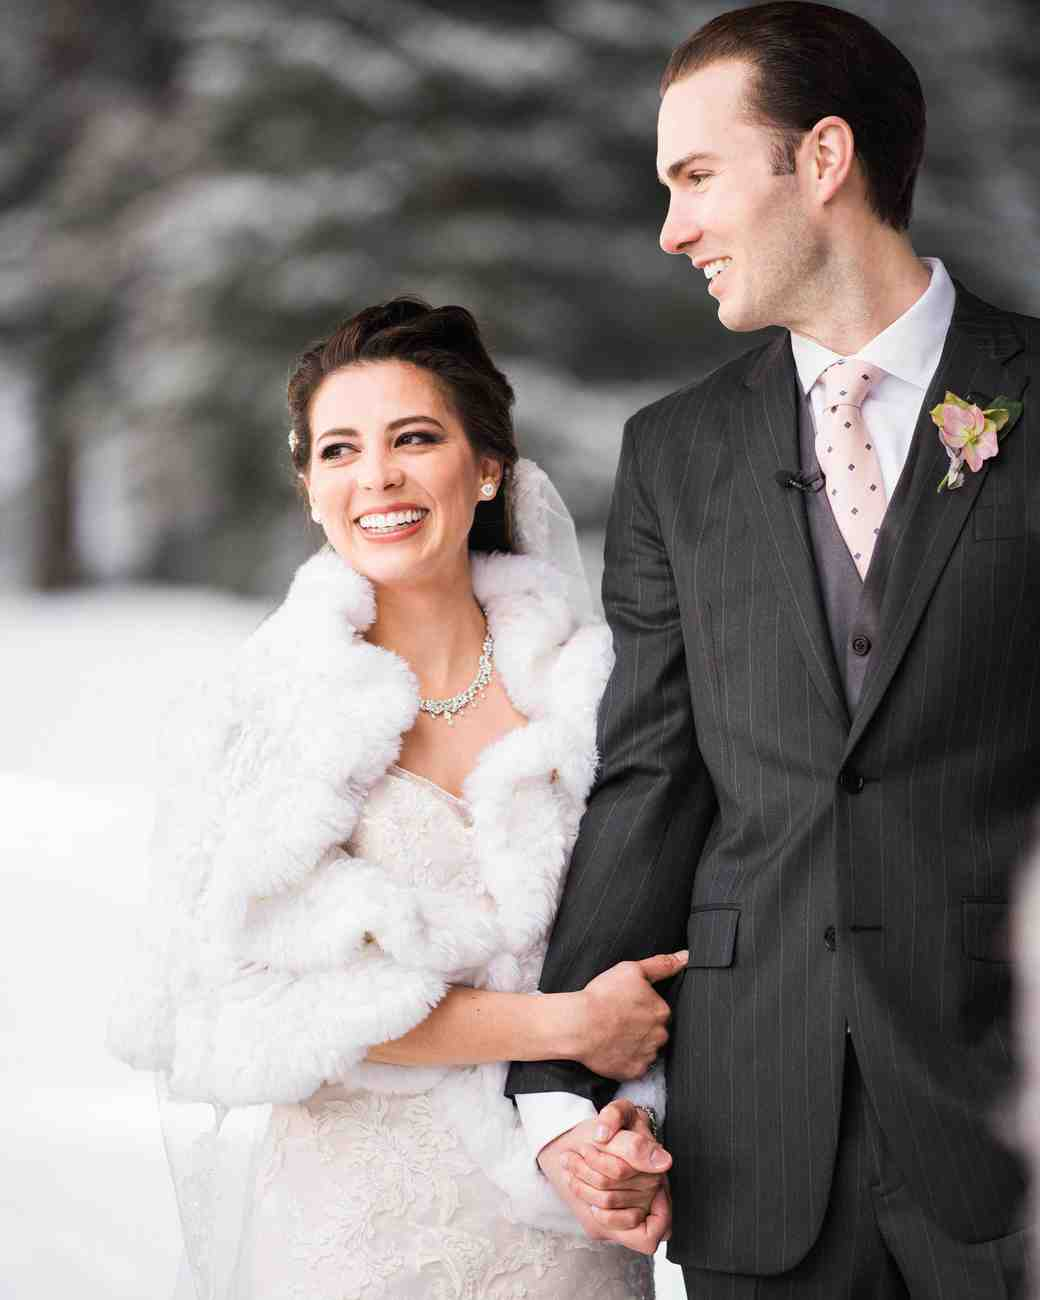 WATCH: 4 Holiday Wedding Videos Guaranteed to Get You in the Spirit